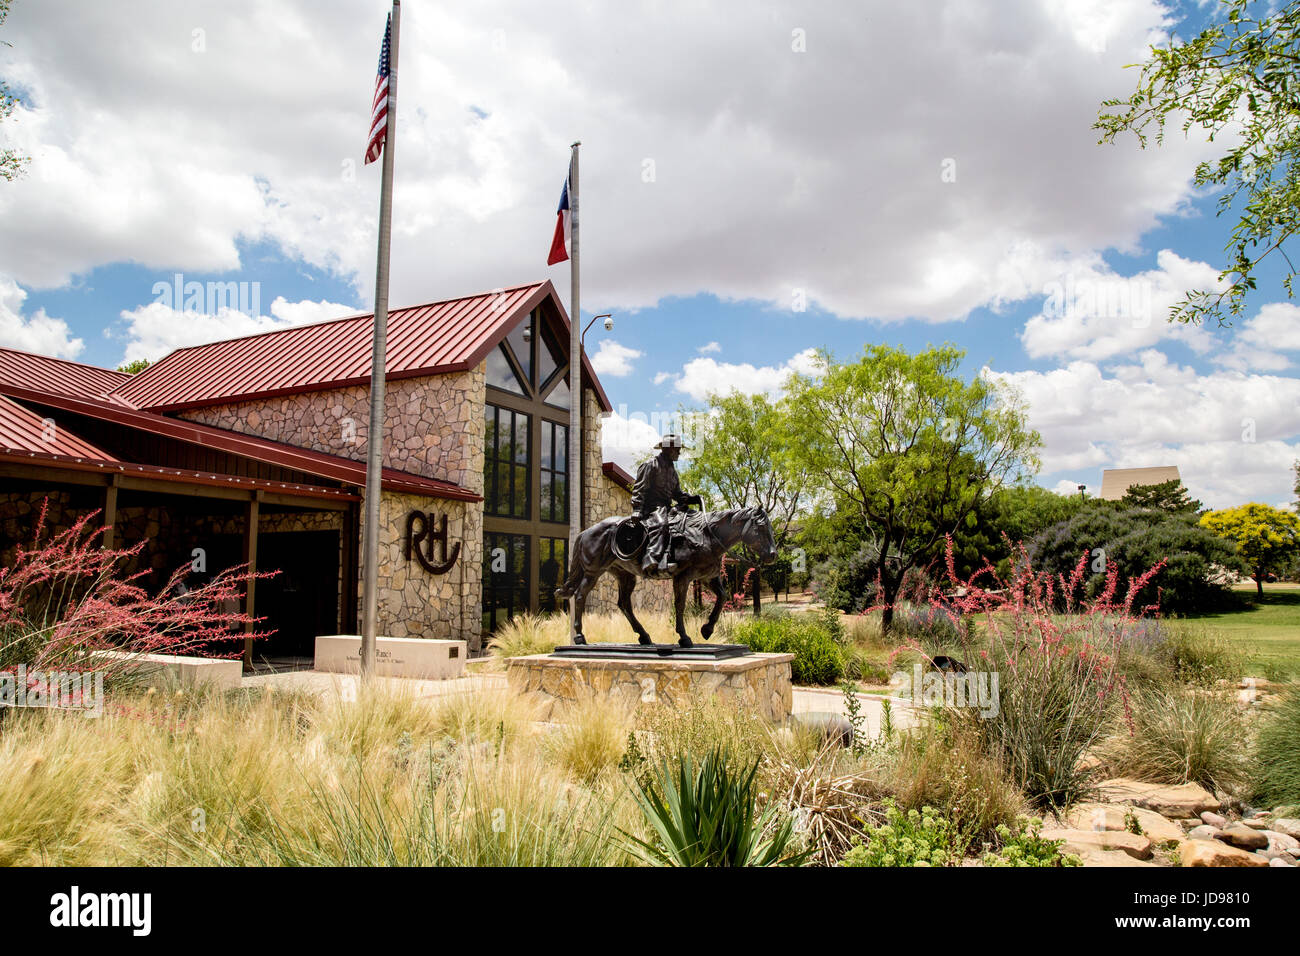 National Ranching Heritage Center entrance and museum in Lubbock, Texas Stock Photo